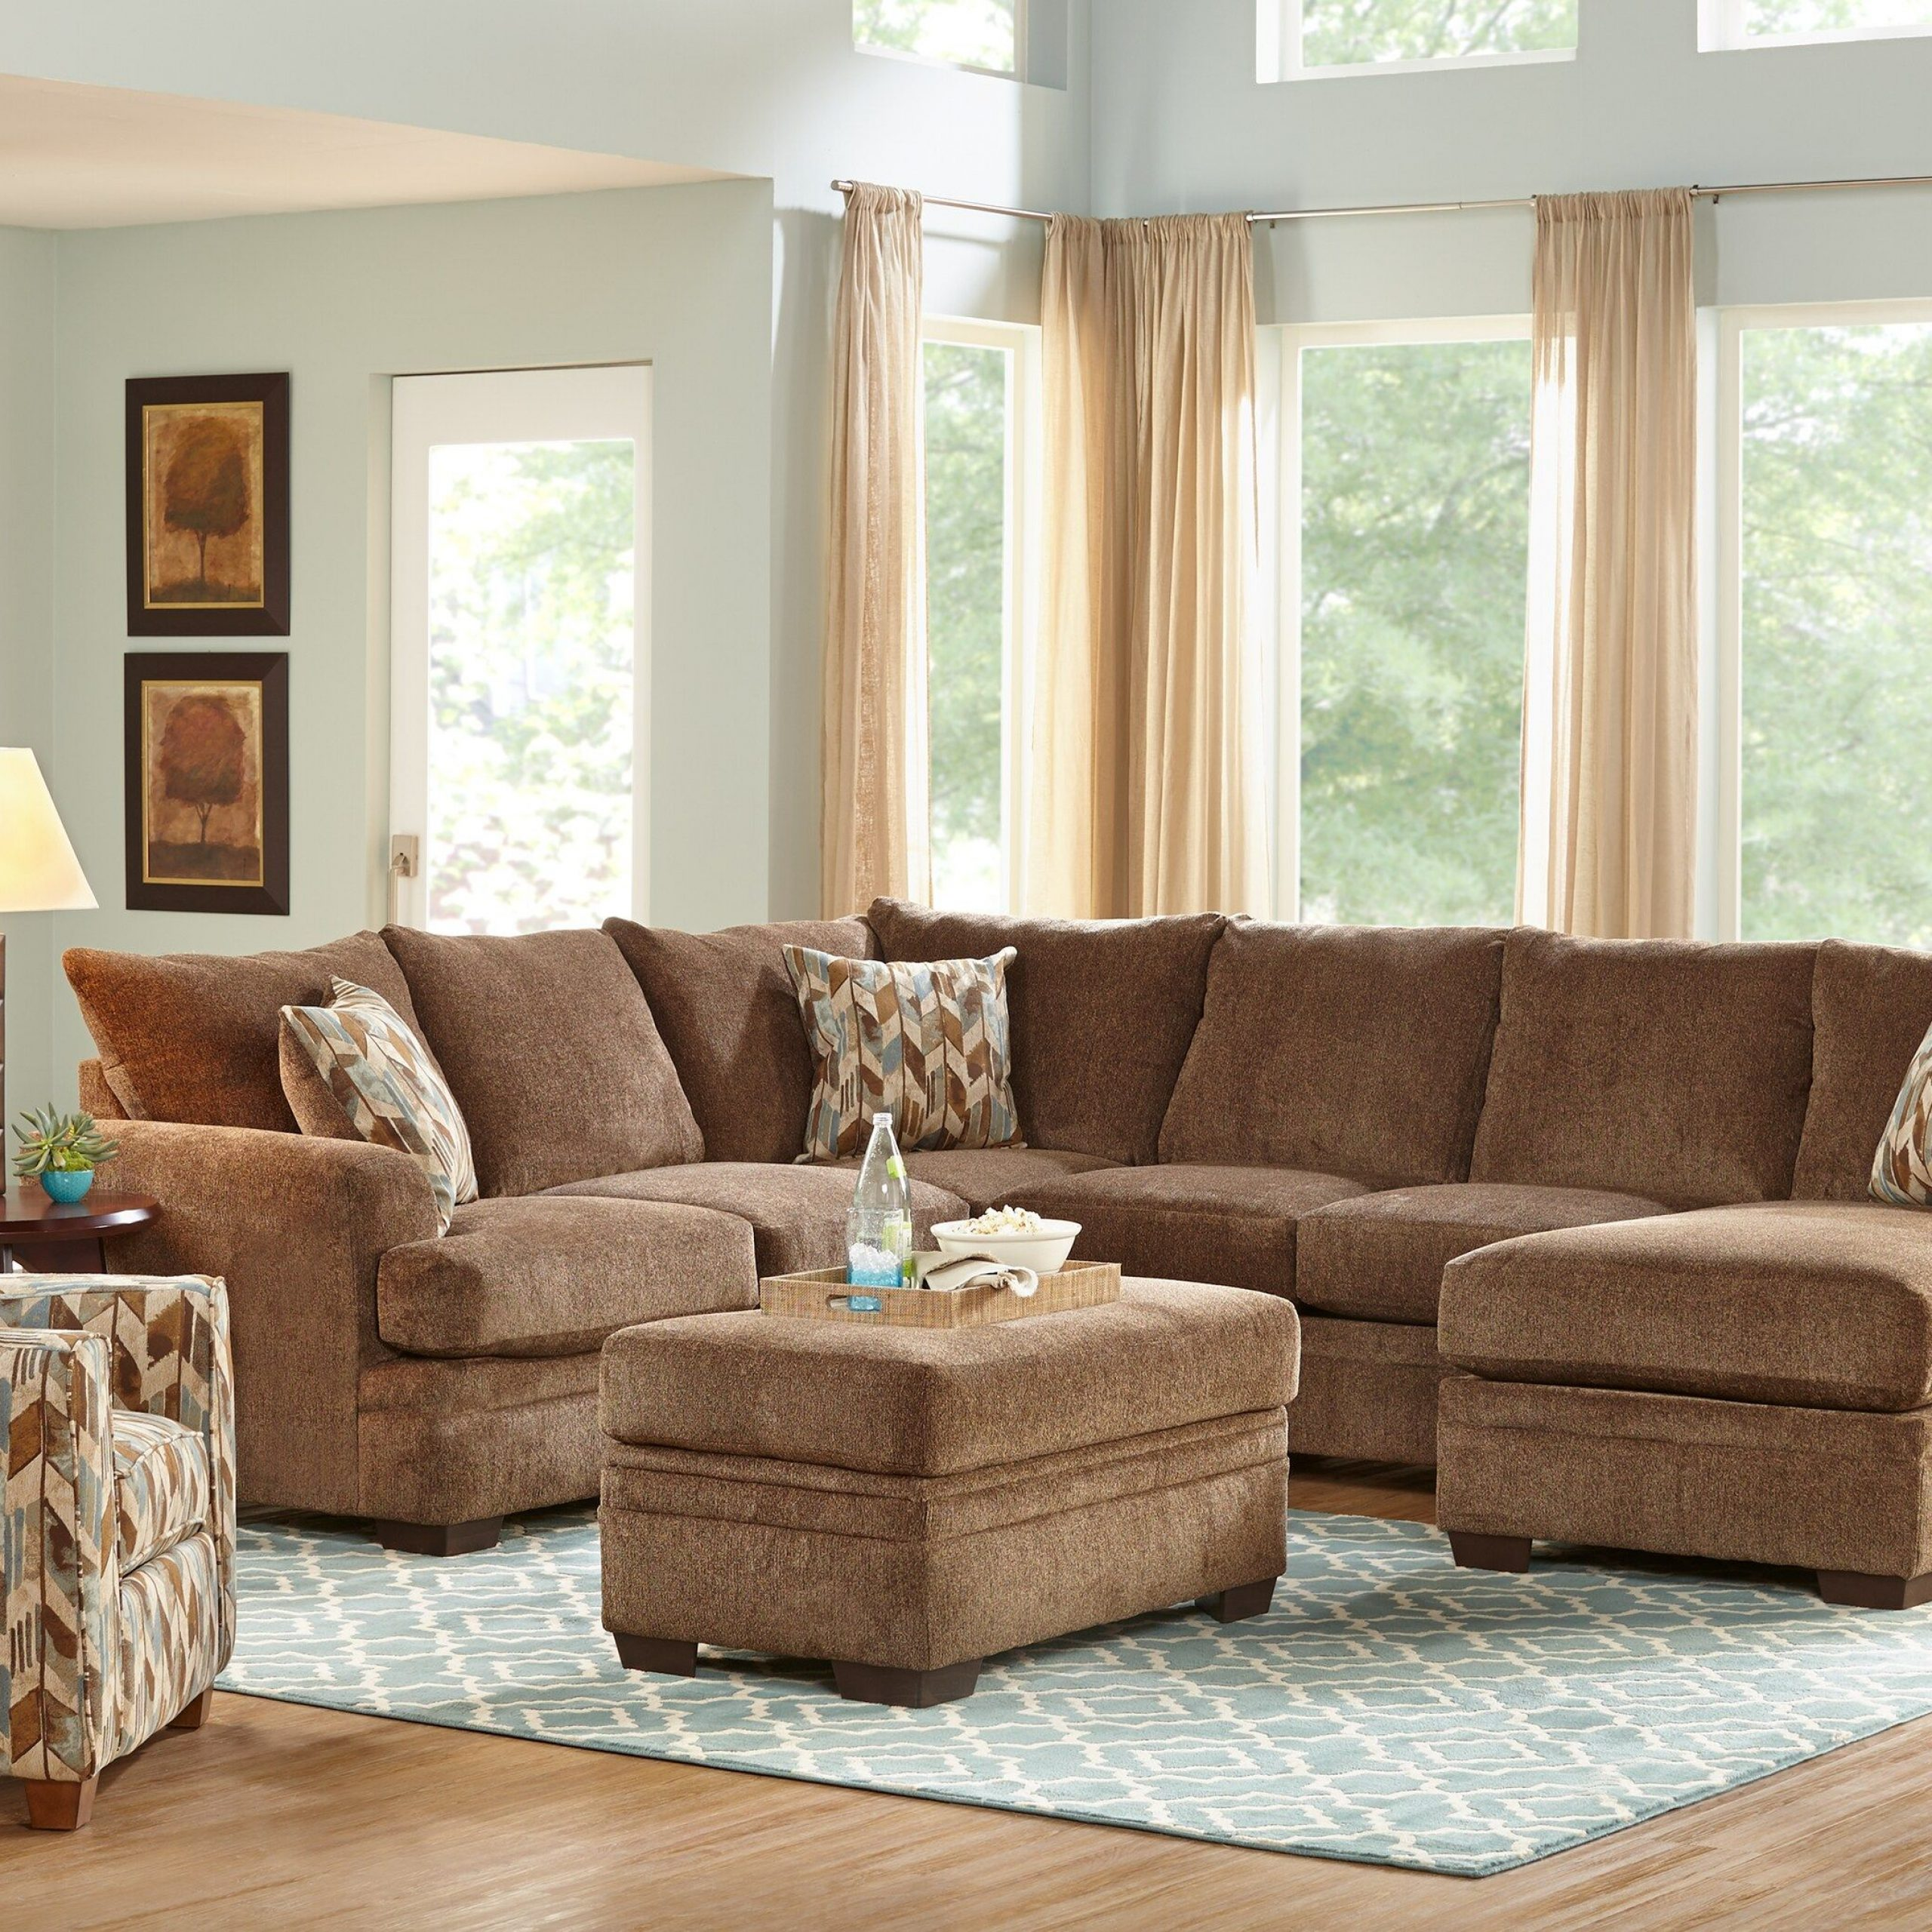 Brenton Court 2 Pc Cocoa Sectional | Living Room Sets Pertaining To 2Pc Luxurious And Plush Corduroy Sectional Sofas Brown (View 1 of 15)